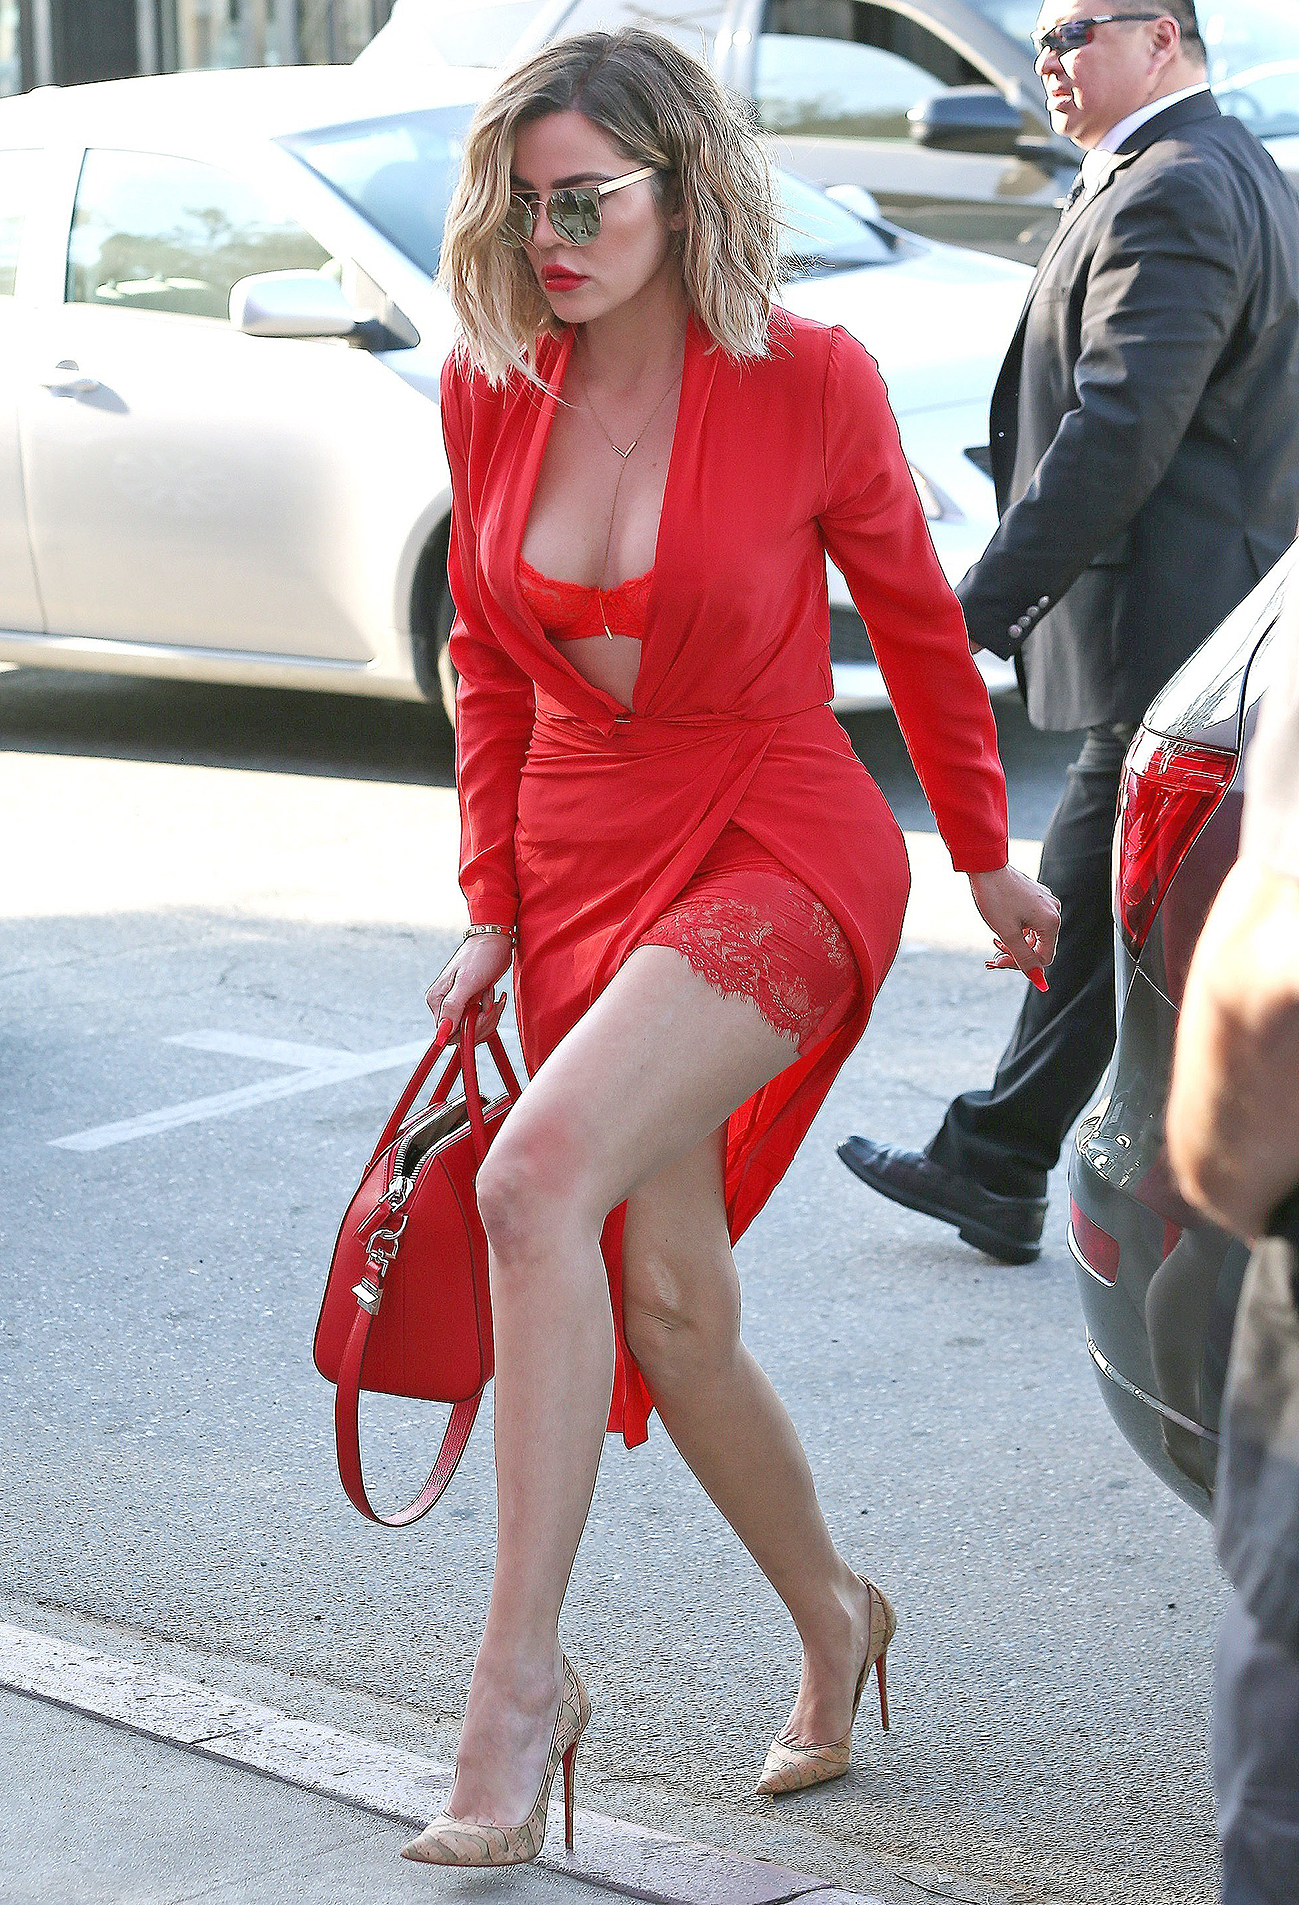 Khloe Kardashian Steps Out In Red In Los Angeles